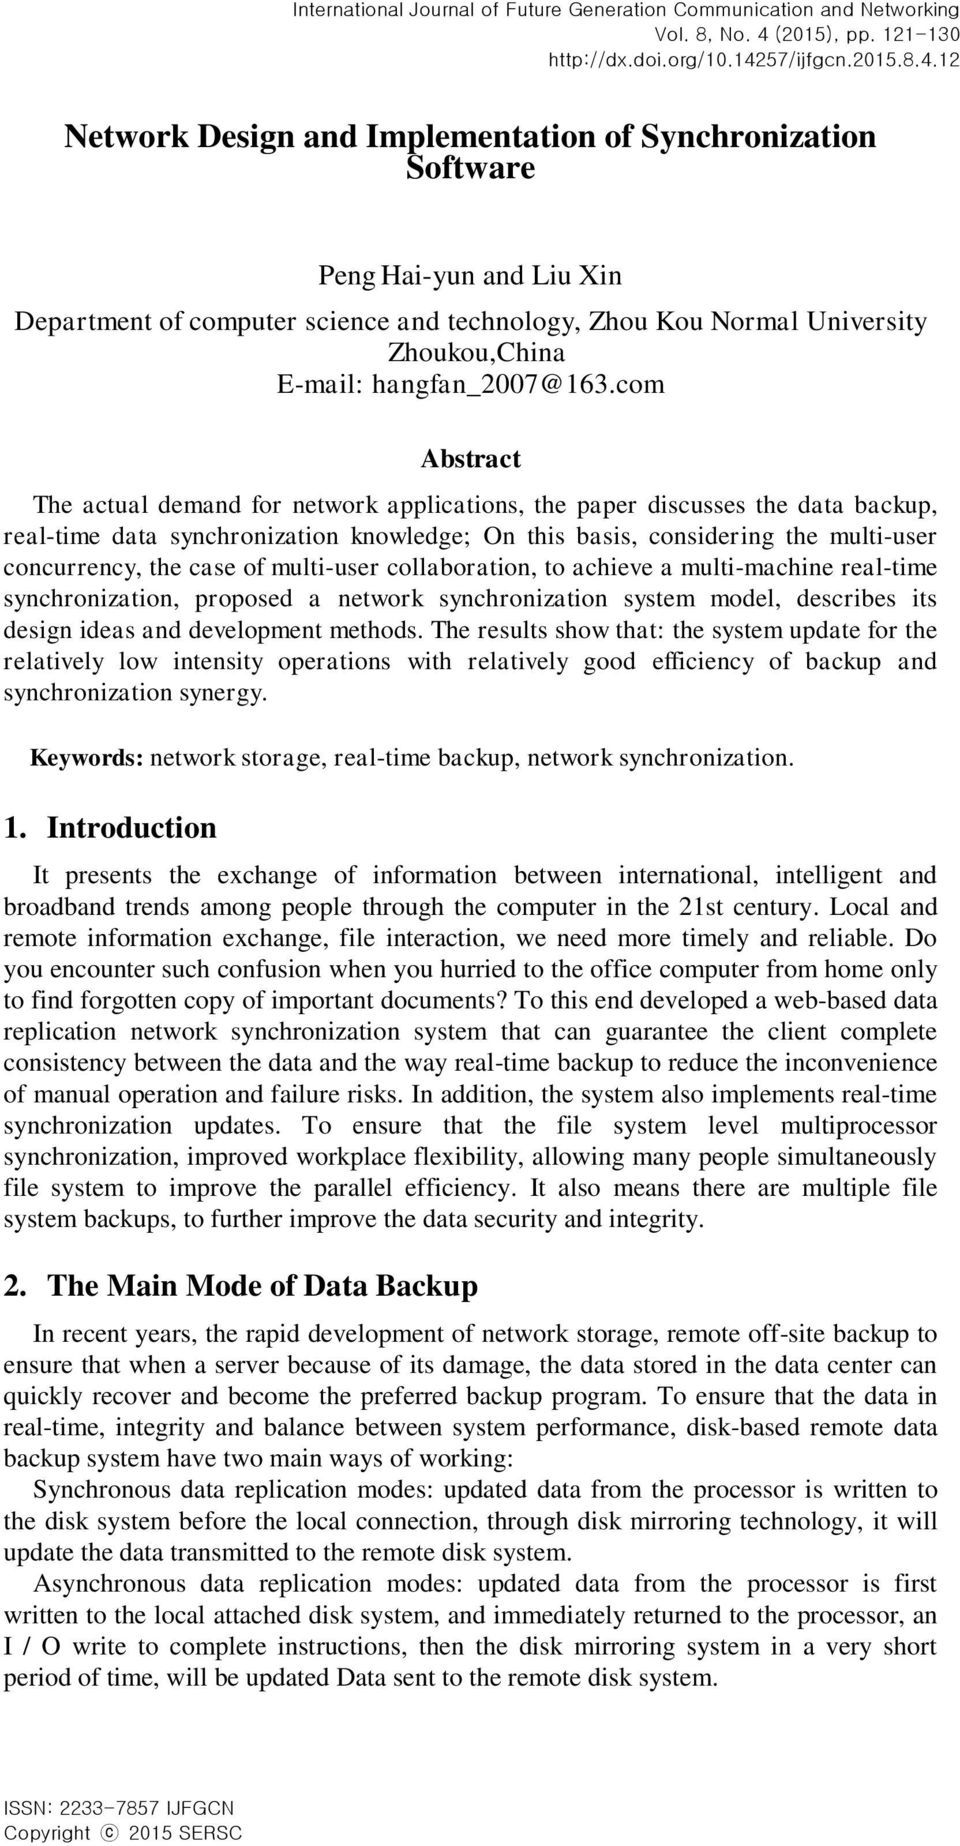 12 Network Design and Implementation of Synchronization Software Peng Hai-yun and Liu Xin Department of computer science and technology, Zhou Kou Normal University Zhoukou,China E-mail: